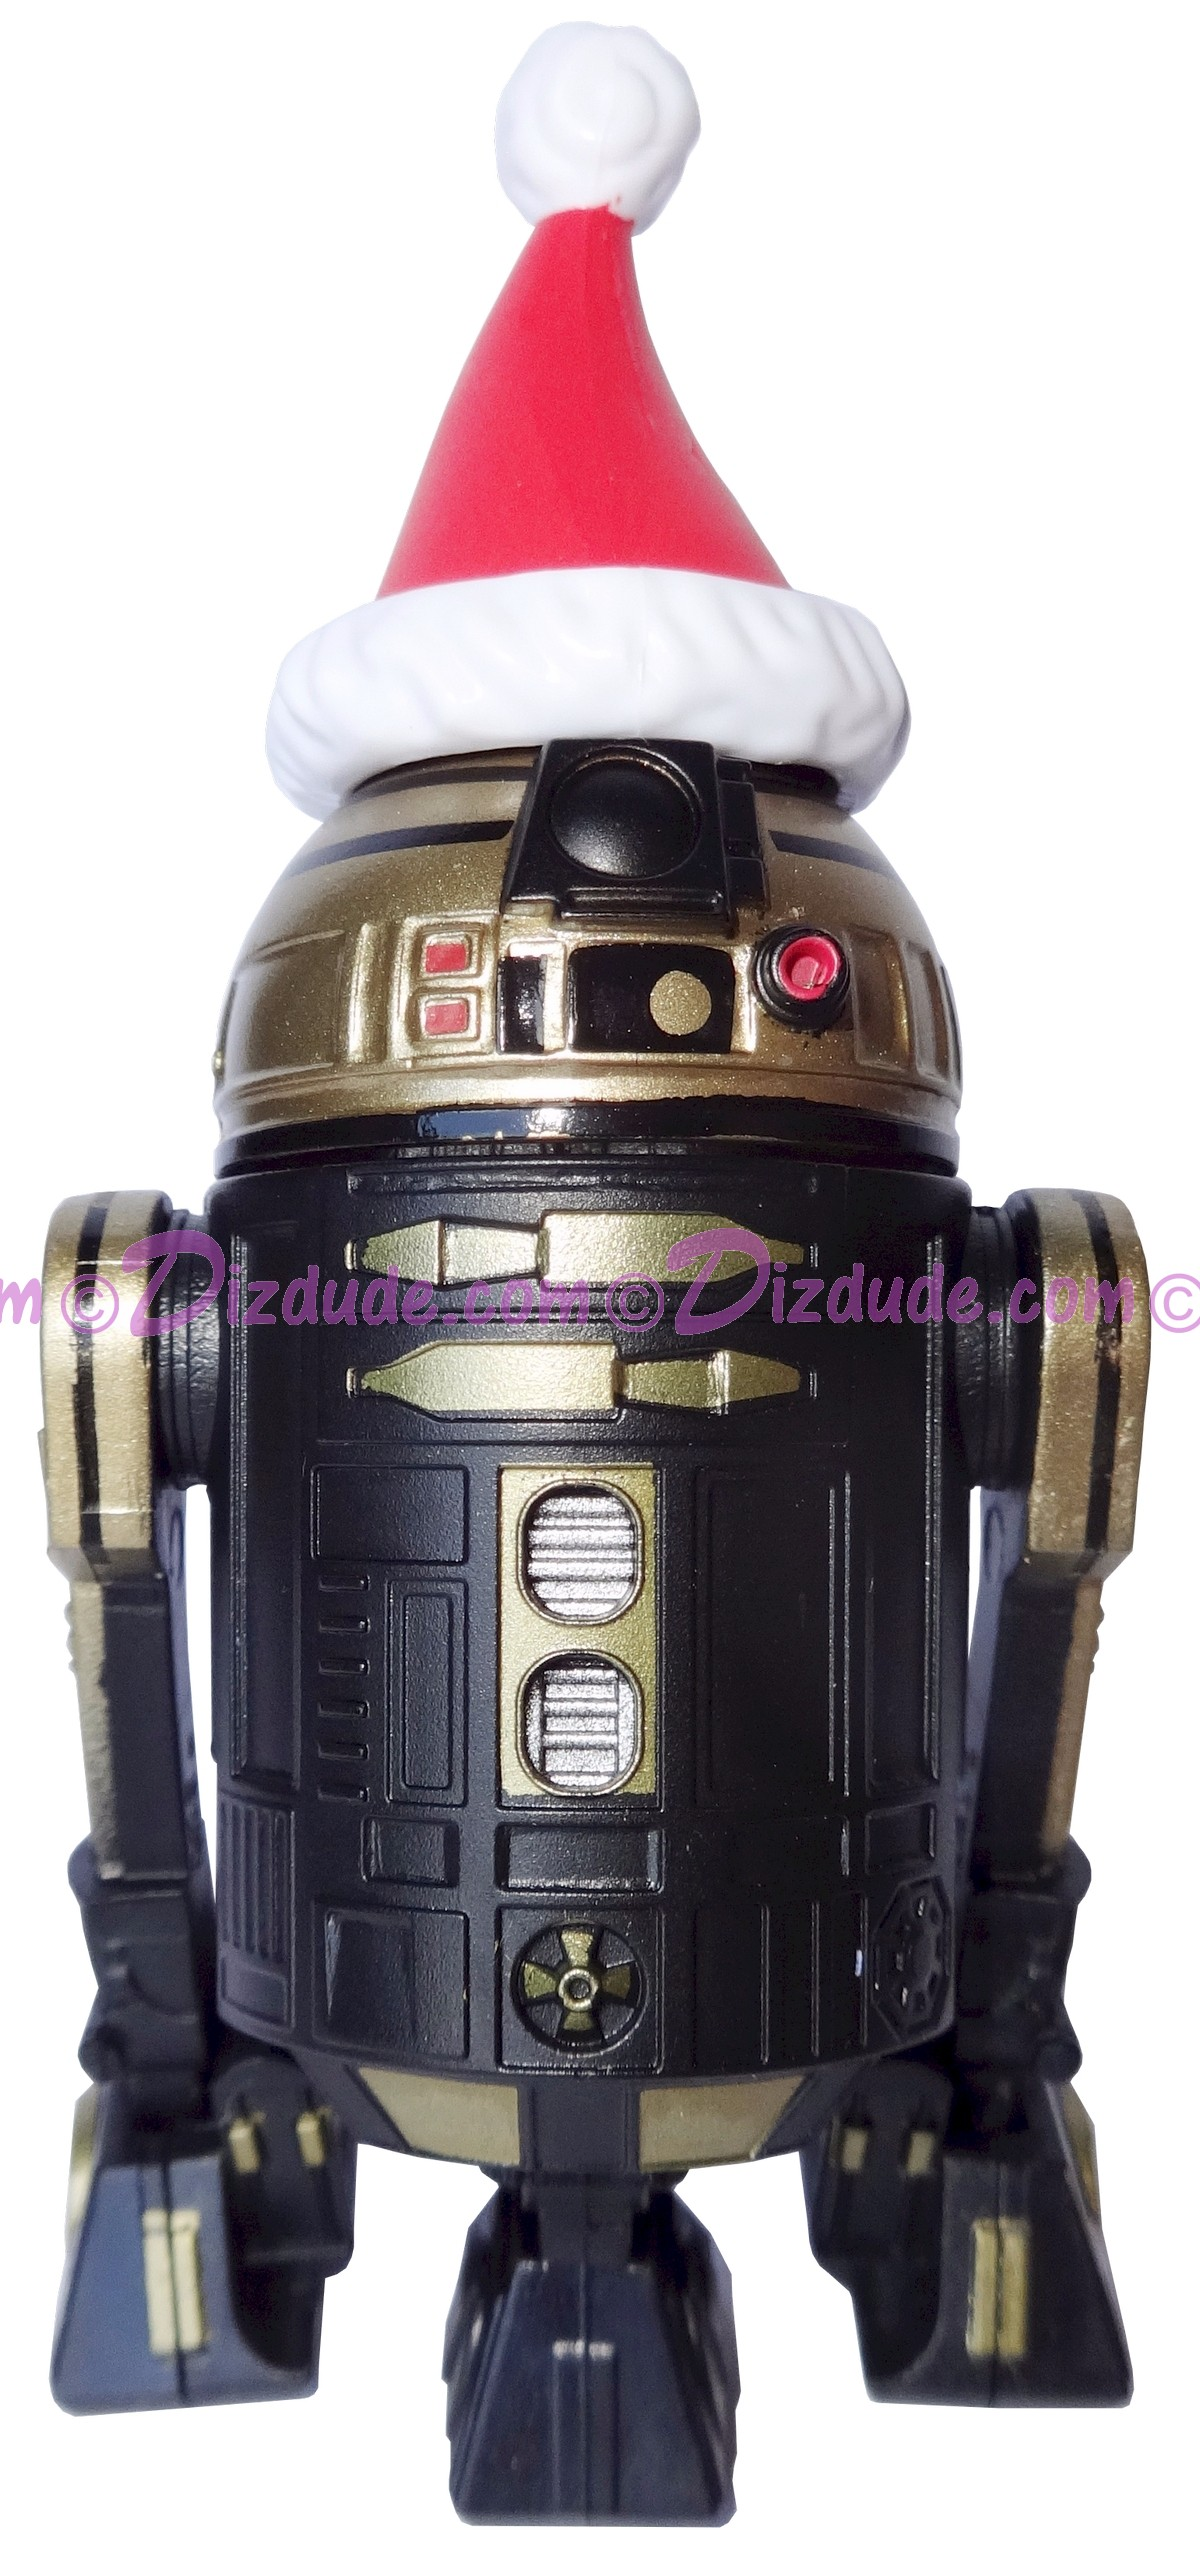 Black & Gold R2 with Santa Hat Astromech Droid ~ Series 2 Disney Star Wars Build-A-Droid Factory © DIZDUDE.COM